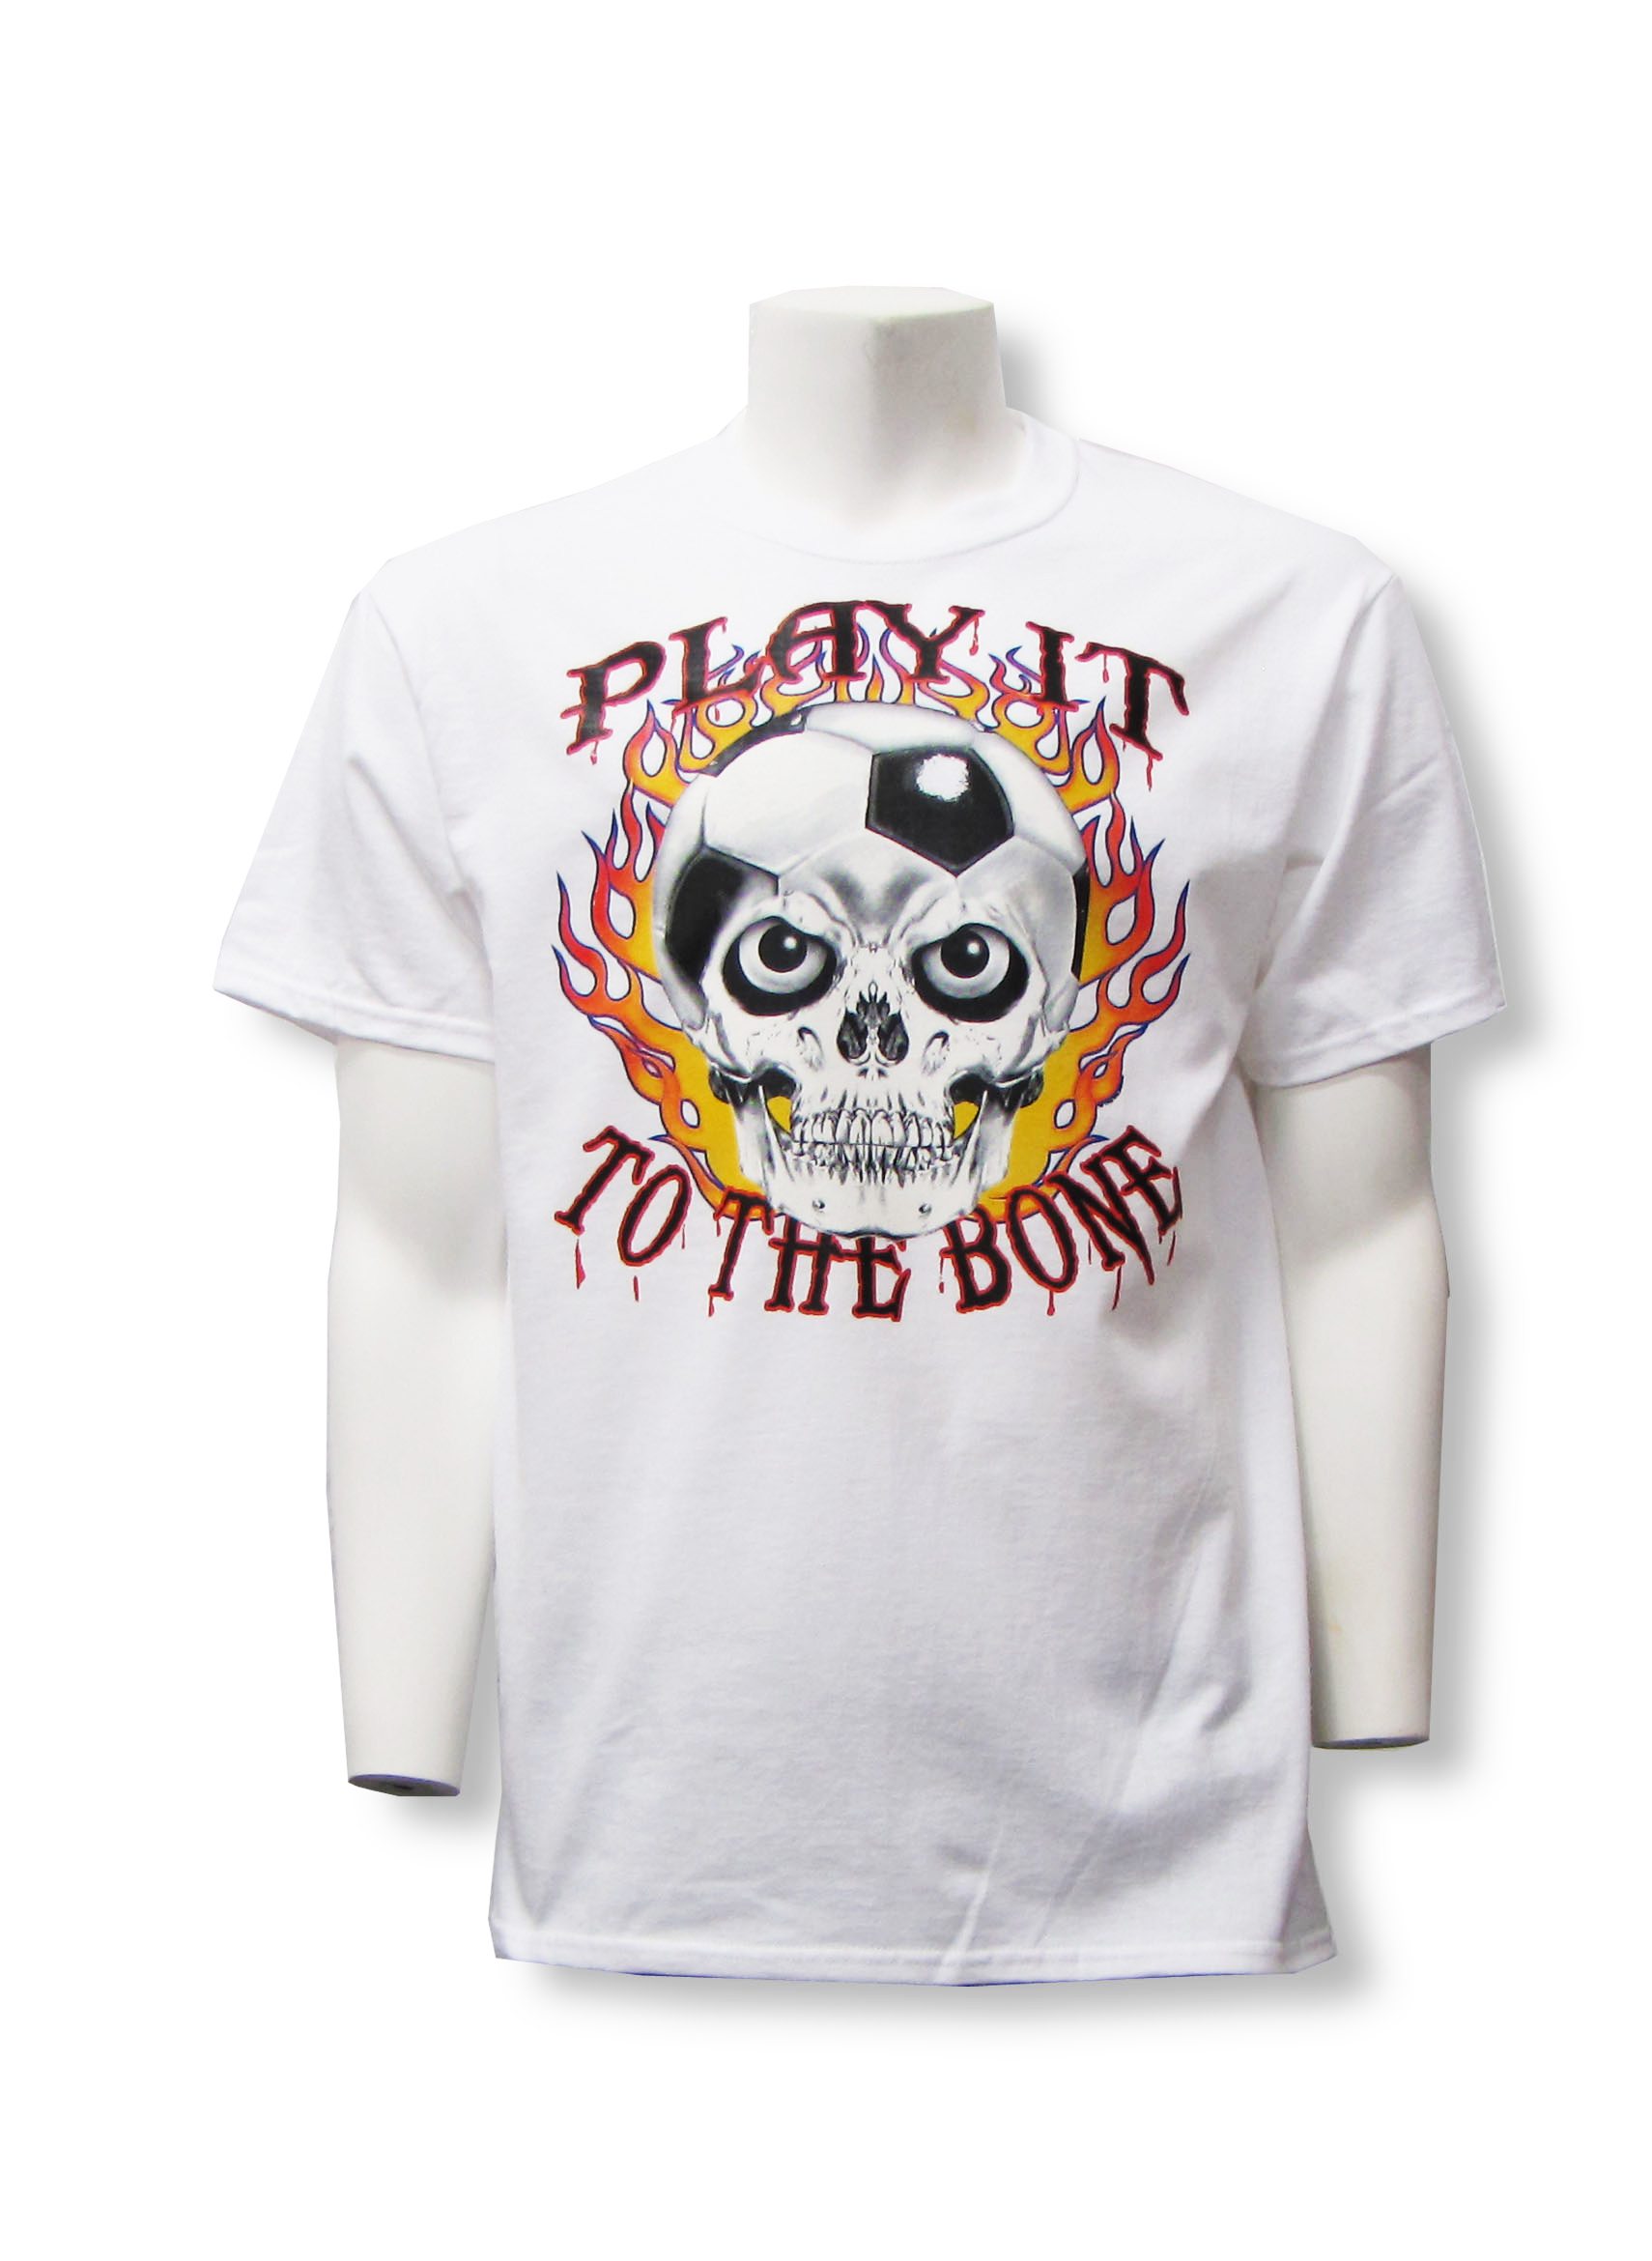 Play It To The Bone soccer T-shirt by Code Four Athletics